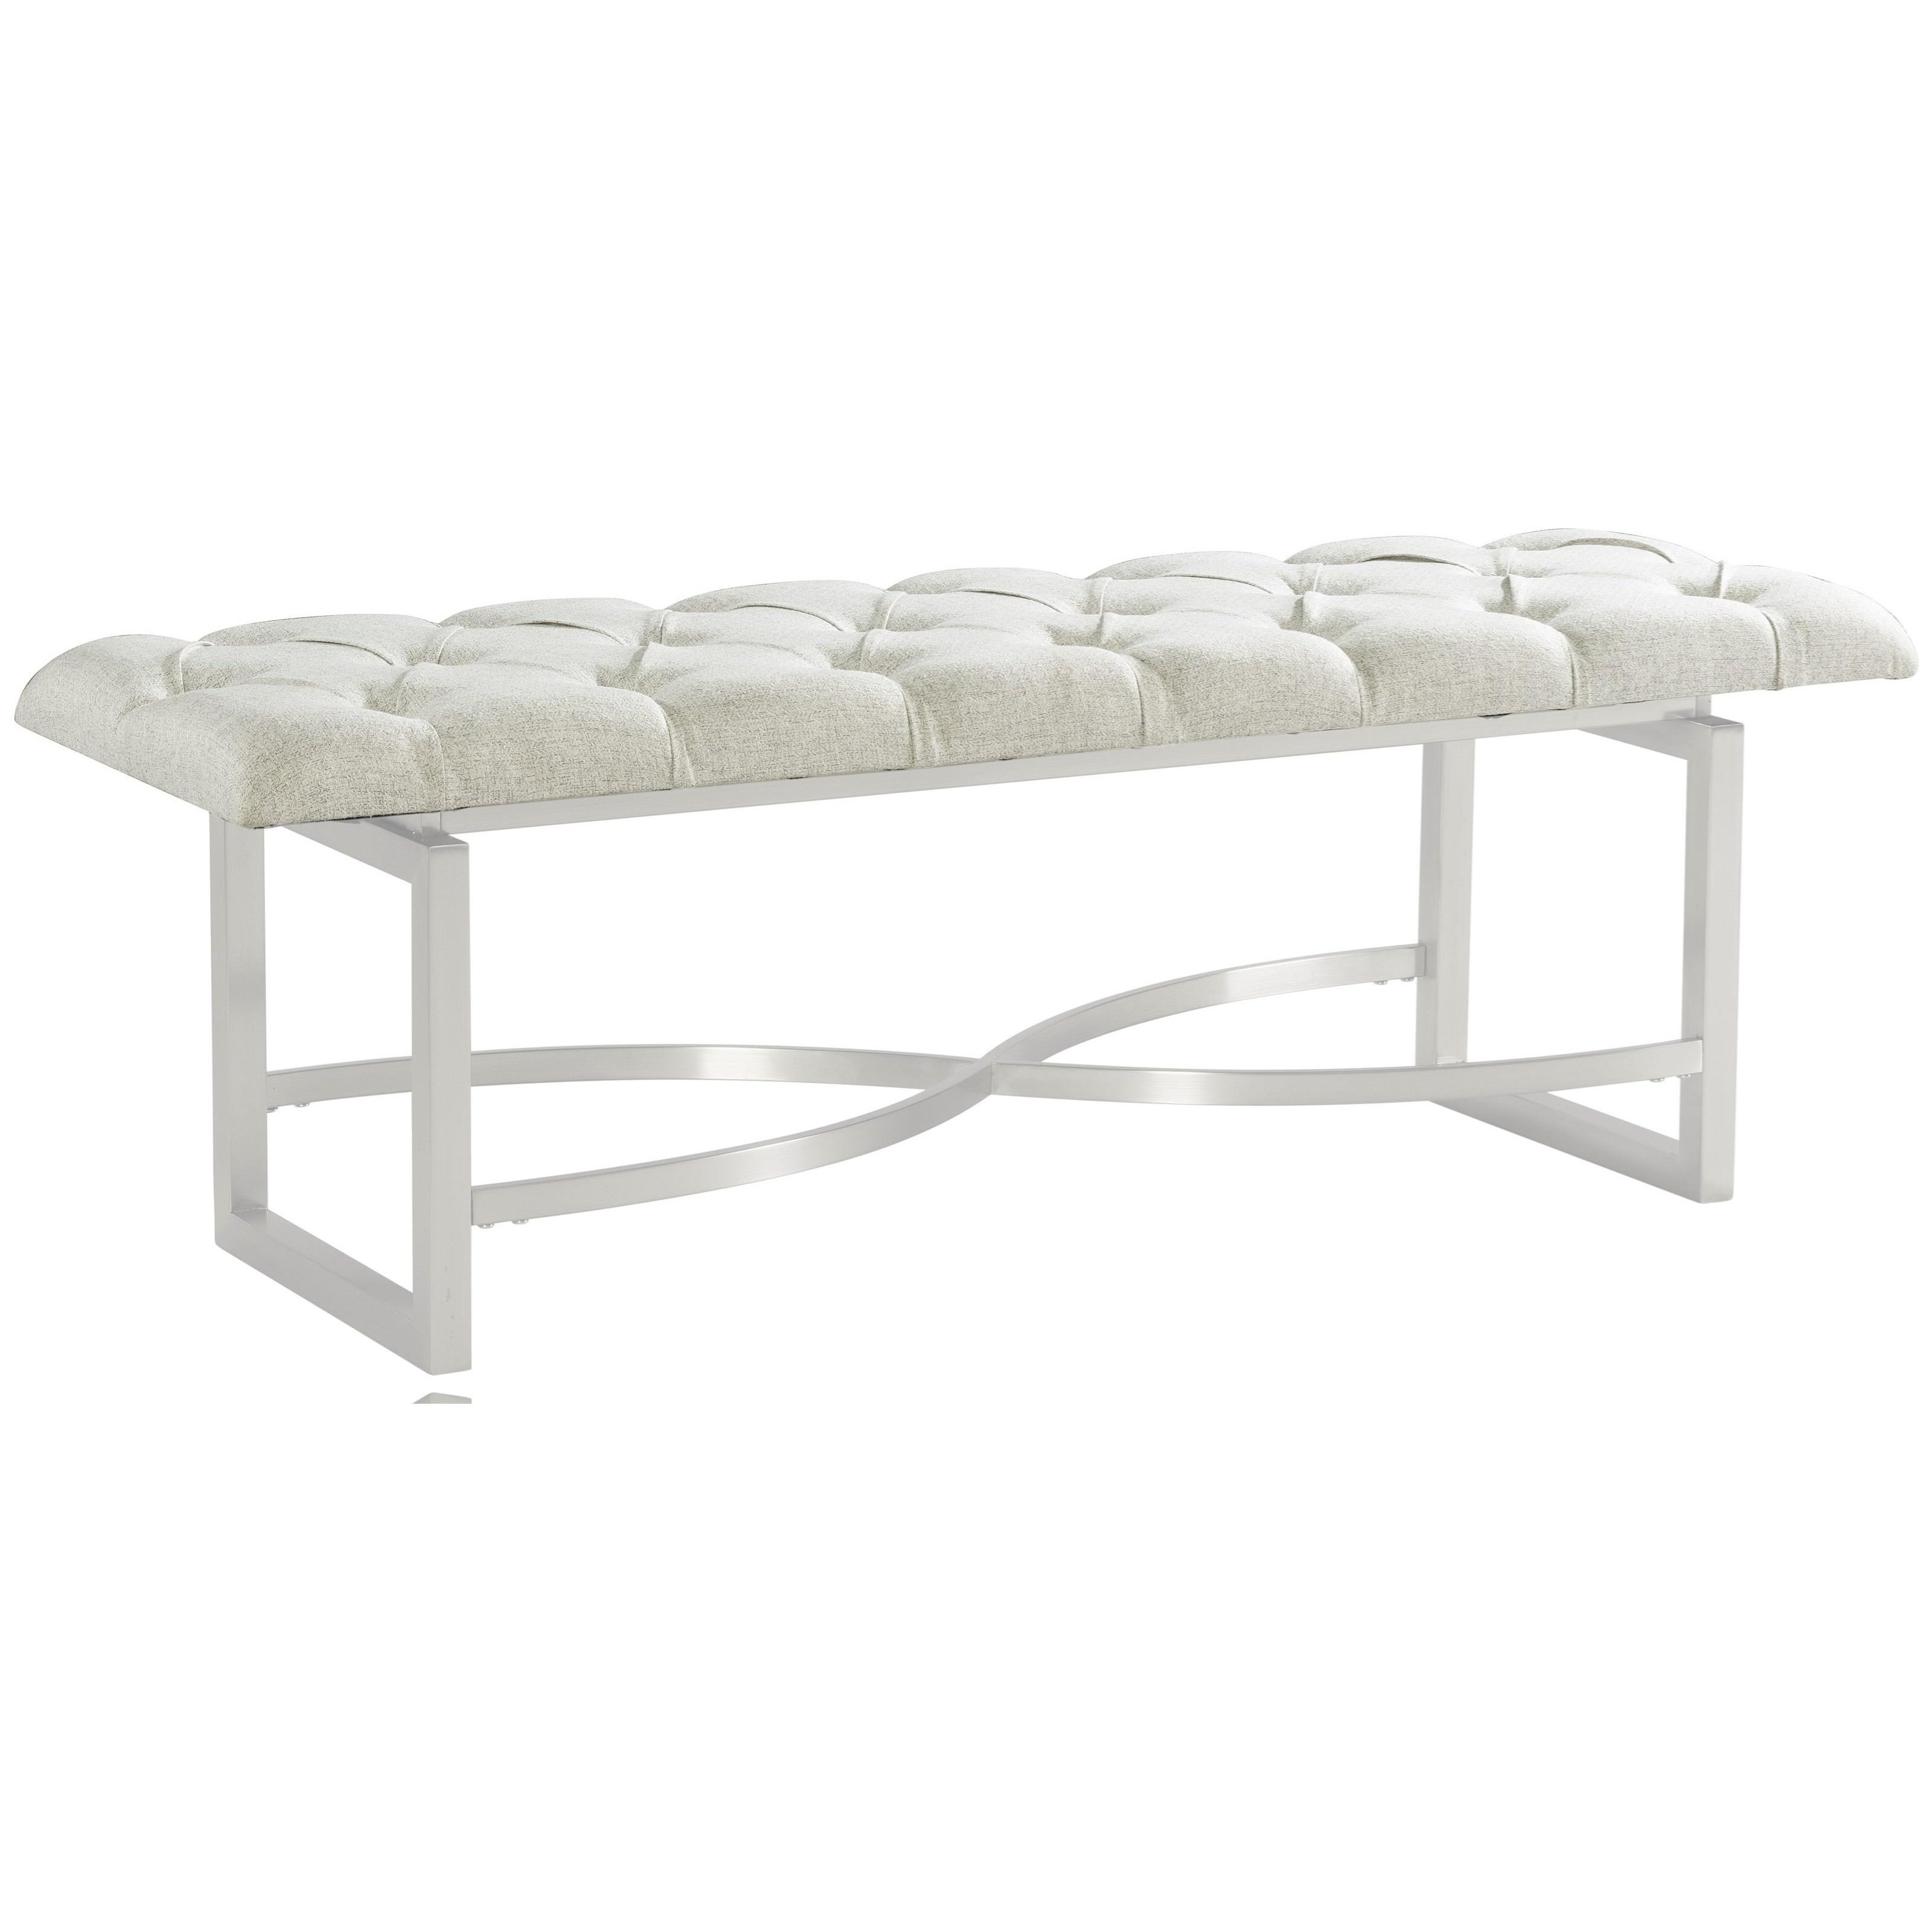 Lilly Upholstered Bed Bench by Riverside Furniture at Baer's Furniture